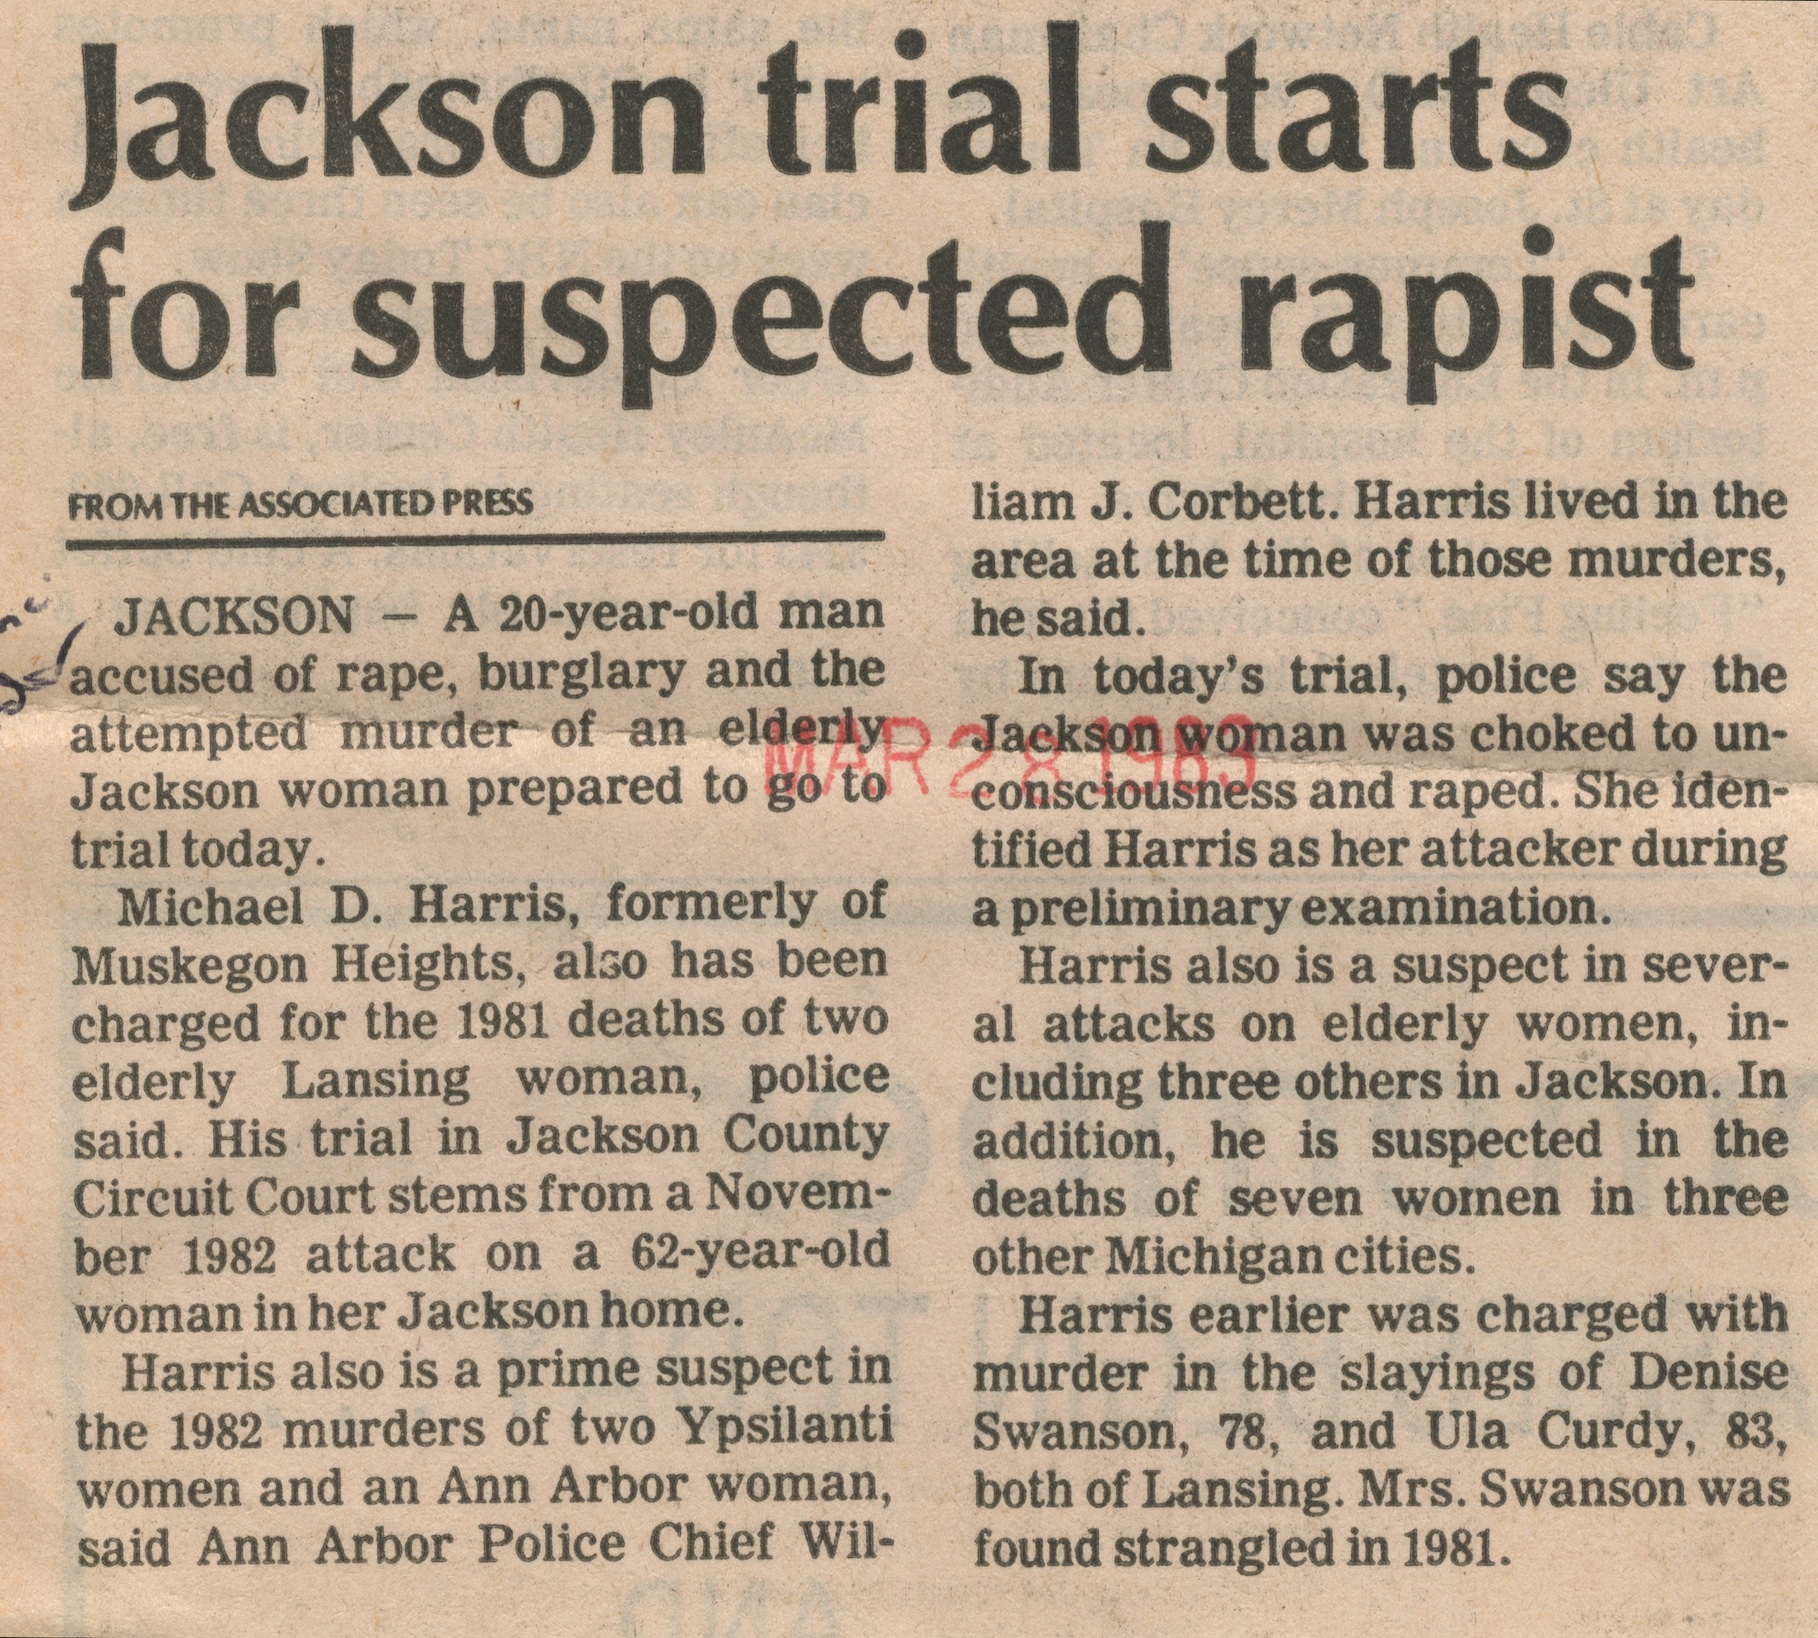 Jackson Trial Starts For Suspected Rapist image